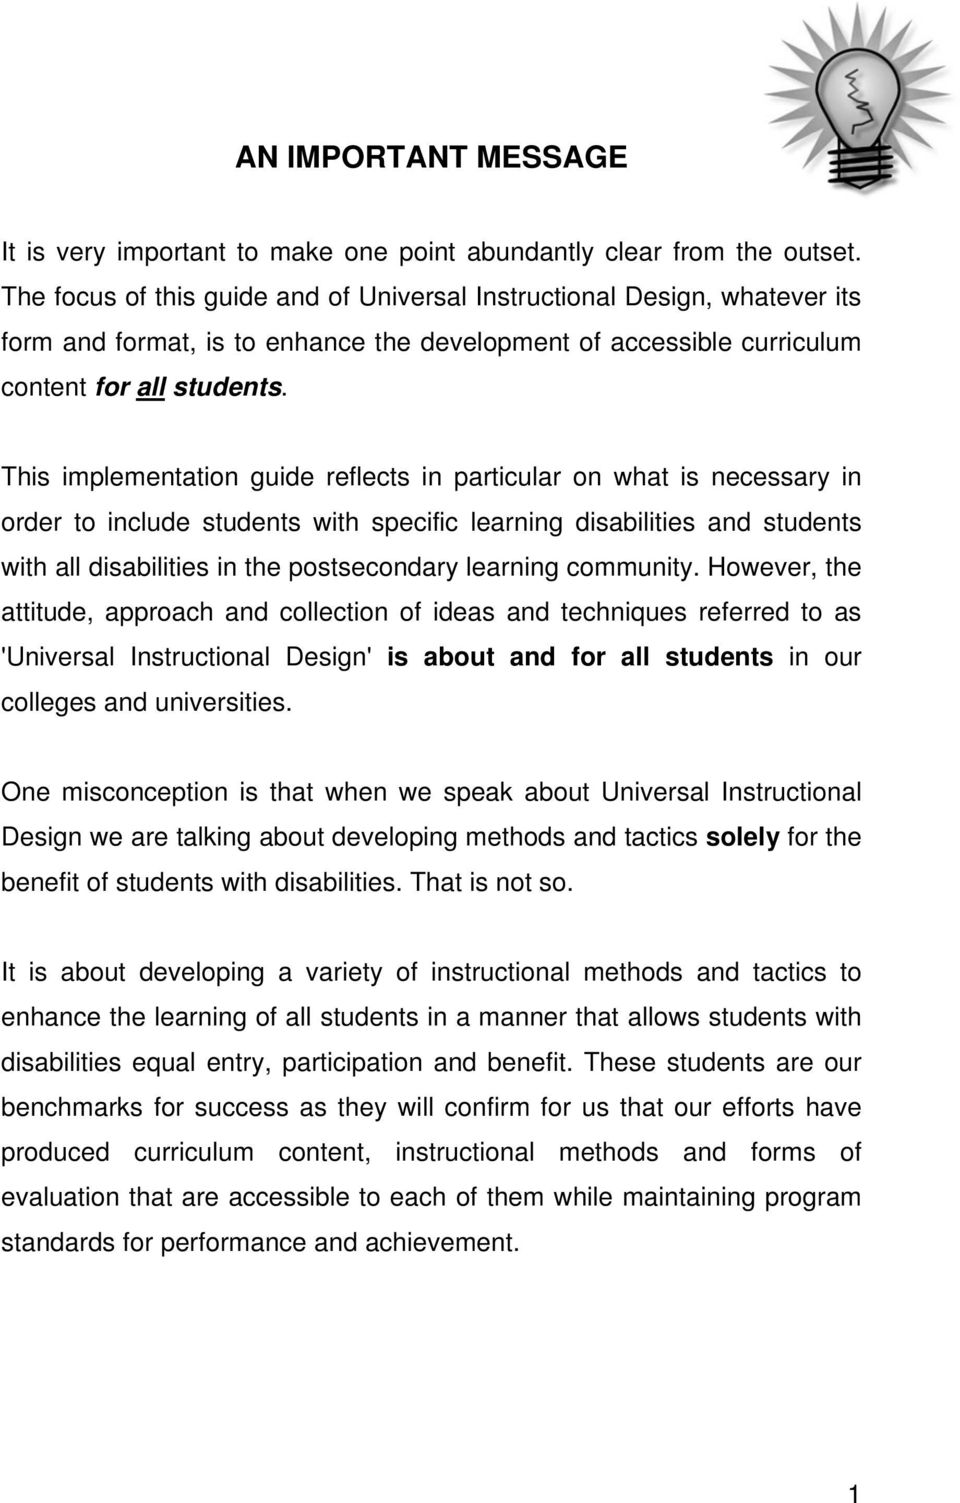 This implementation guide reflects in particular on what is necessary in order to include students with specific learning disabilities and students with all disabilities in the postsecondary learning